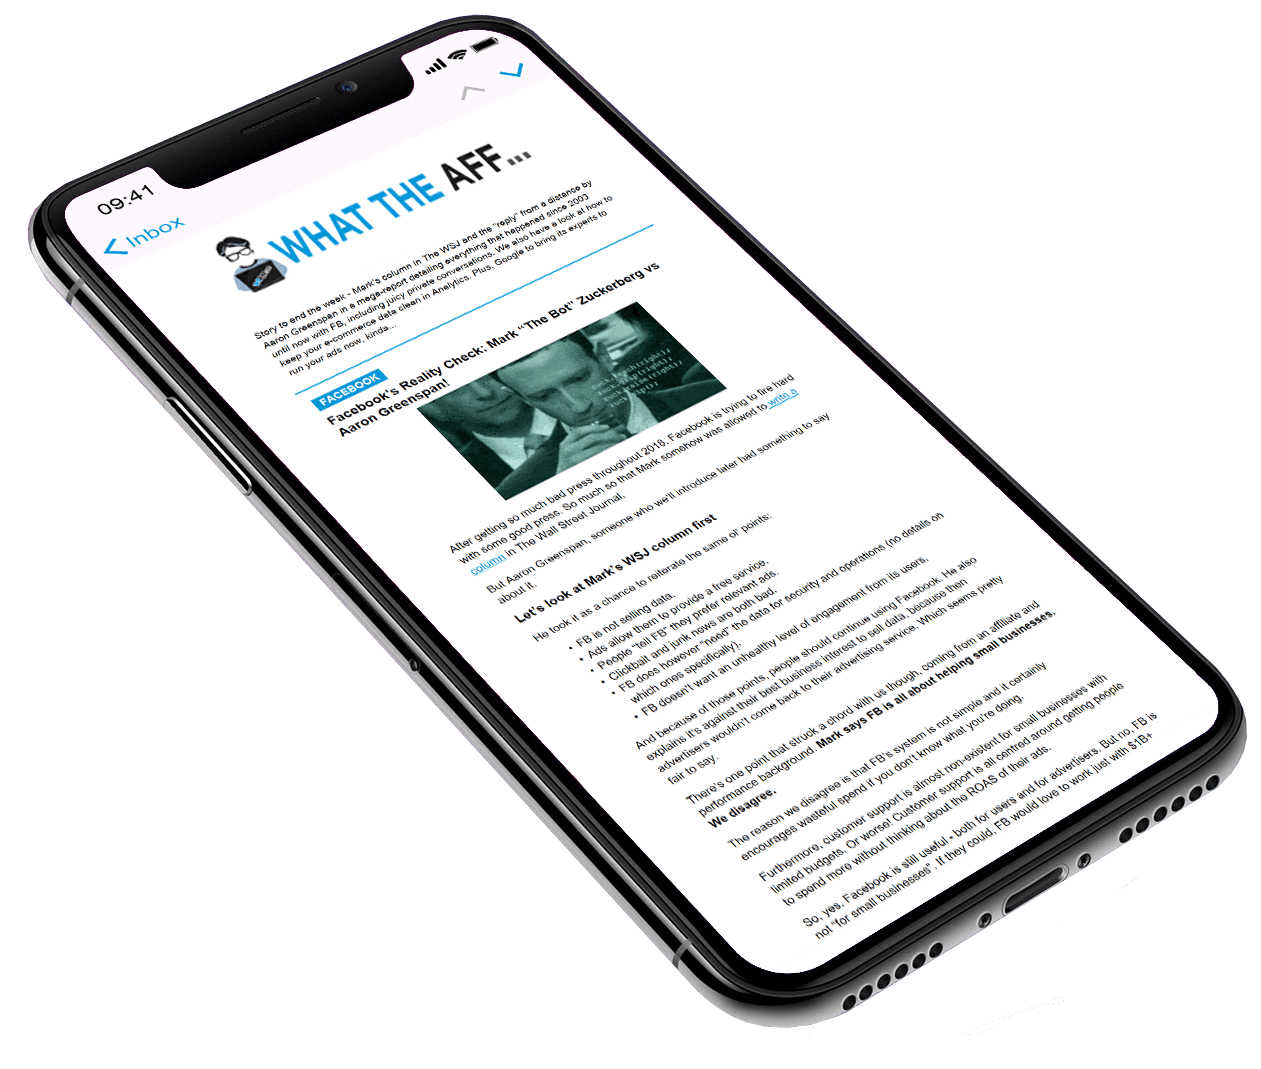 September 10, 2018 - The digital marketer's #1 daily briefing!